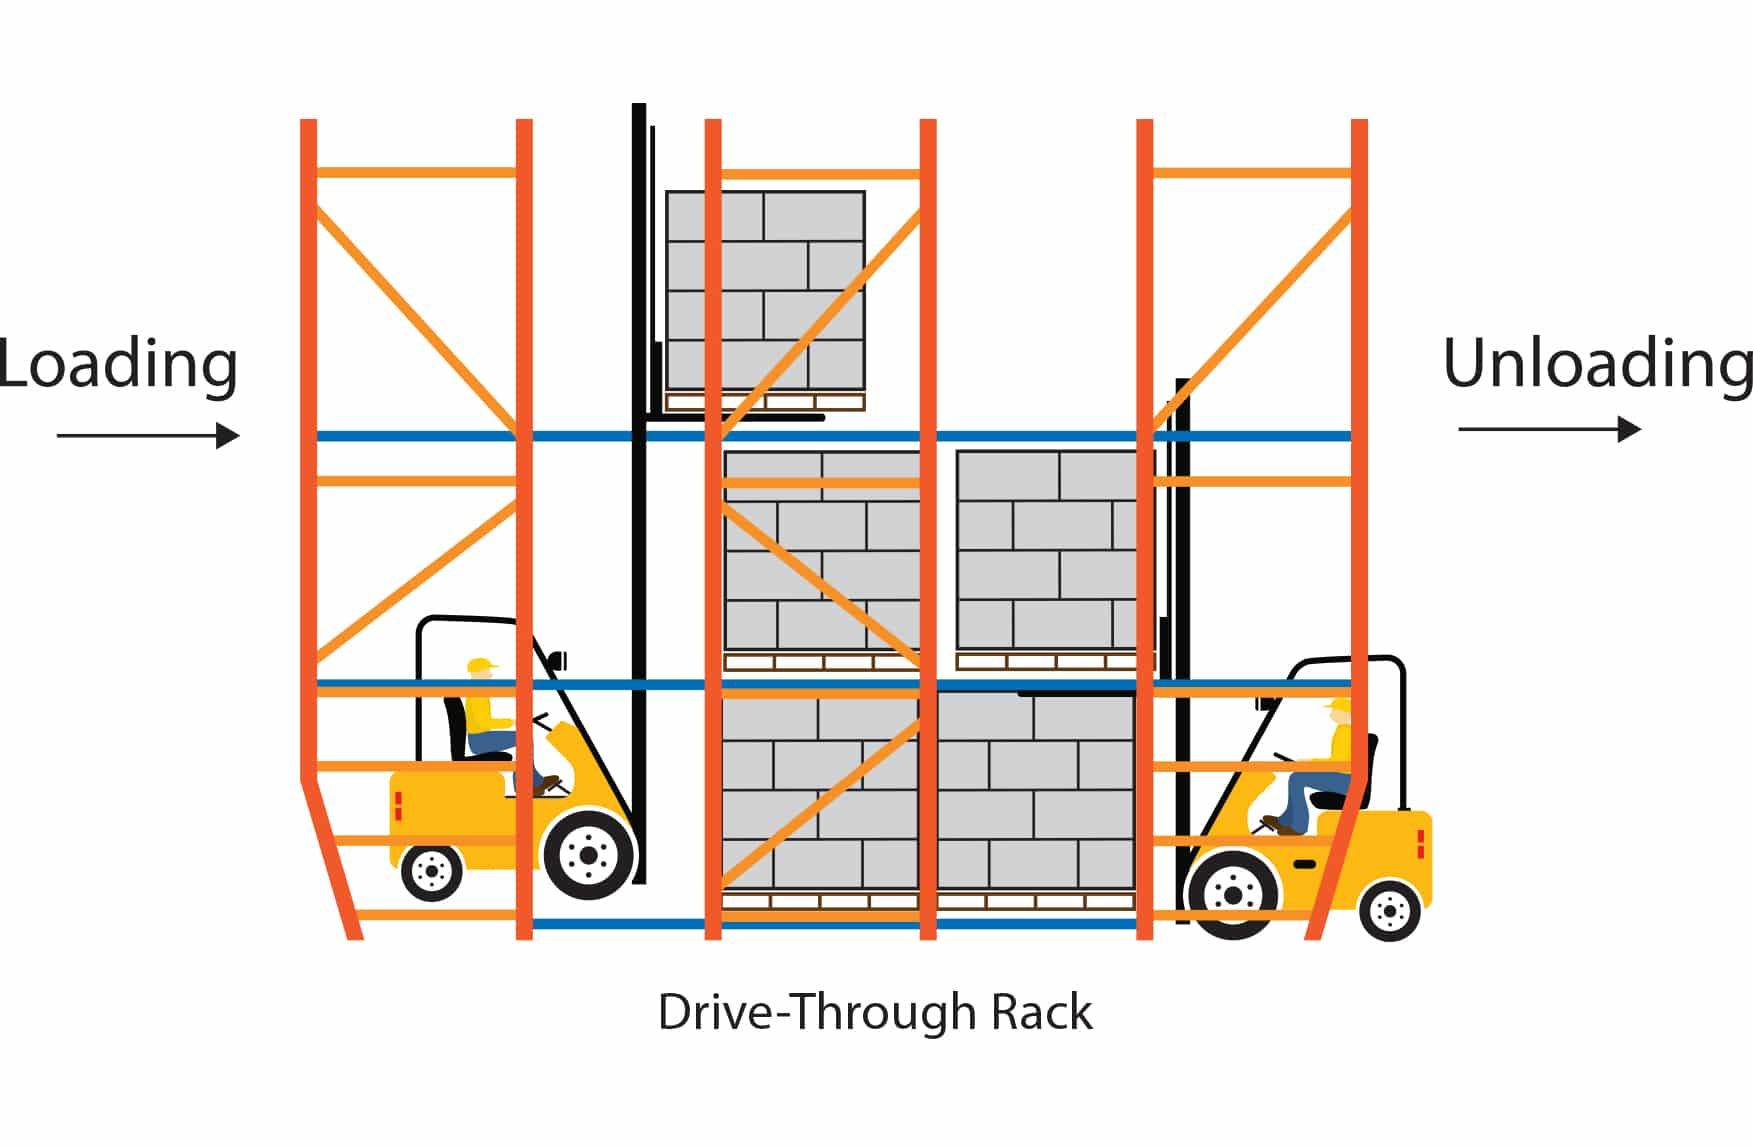 Drive Through Rack product flow